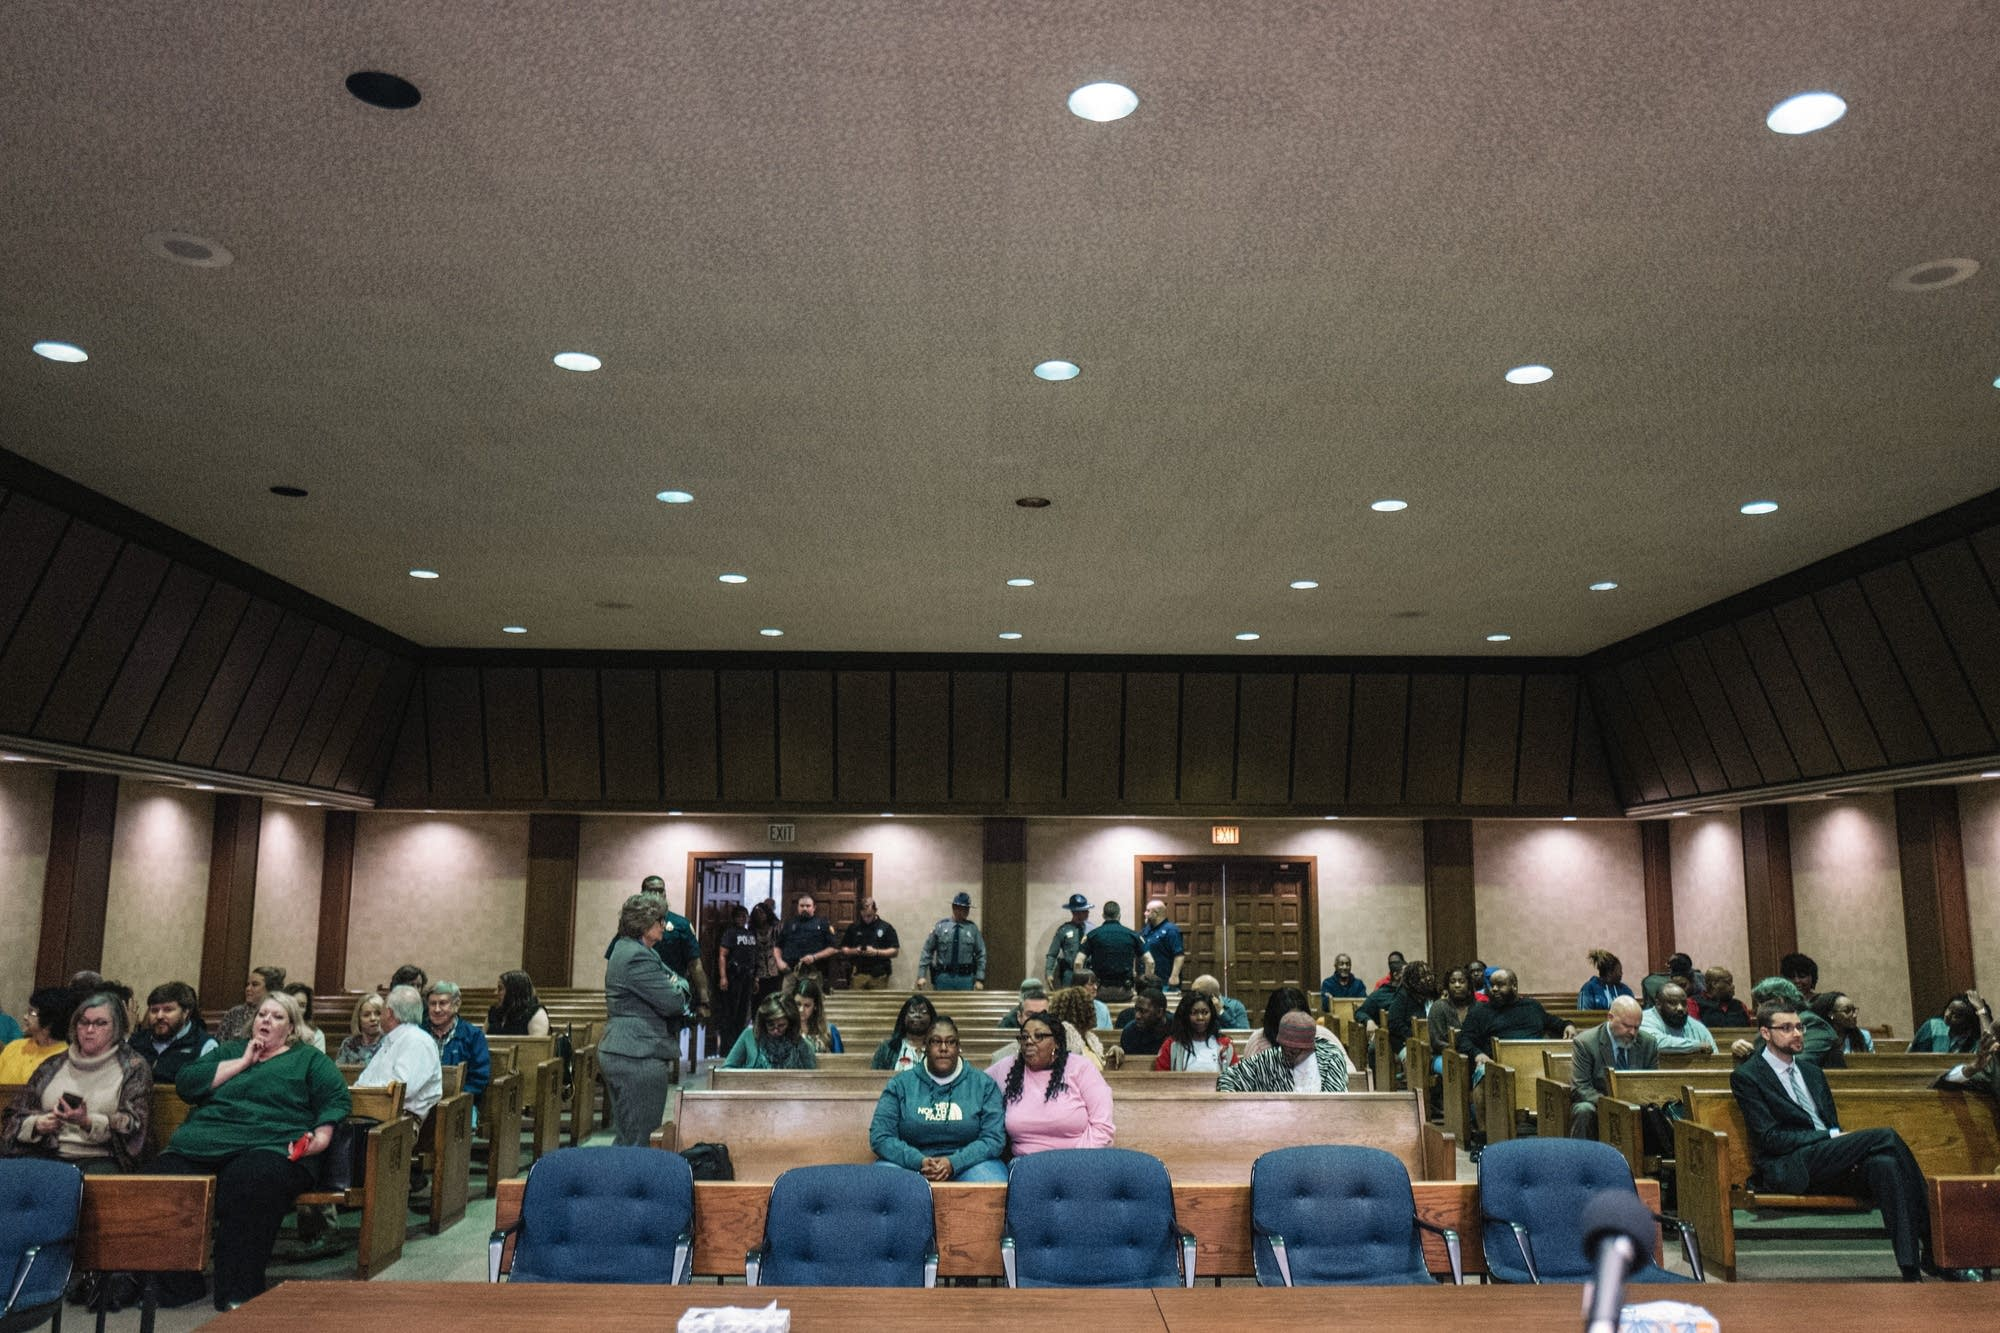 Crowd files in, Montgomery County Courthouse